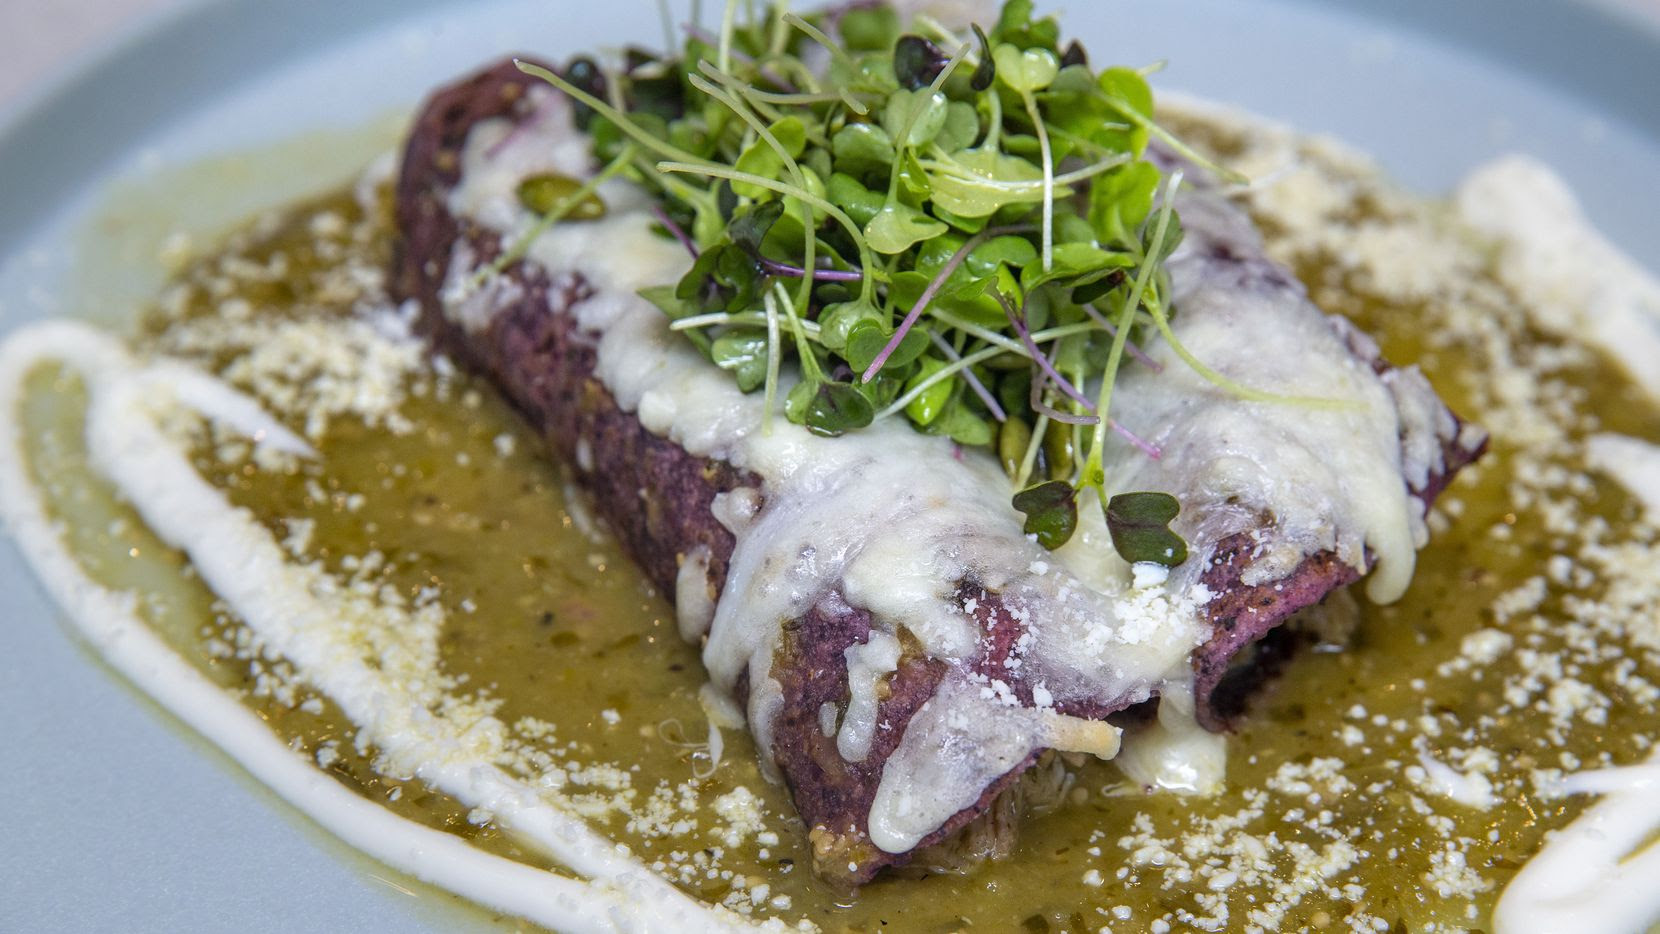 The Tipsy Chicken enchilada plate, prepared by Lada chef-owner Michael Ehlert, is made with beer-braised chicken and tomatillo sauce. Ehlert is set to open Lada restaurant in mid-November in Far North Dallas, near the western border of Richardson.